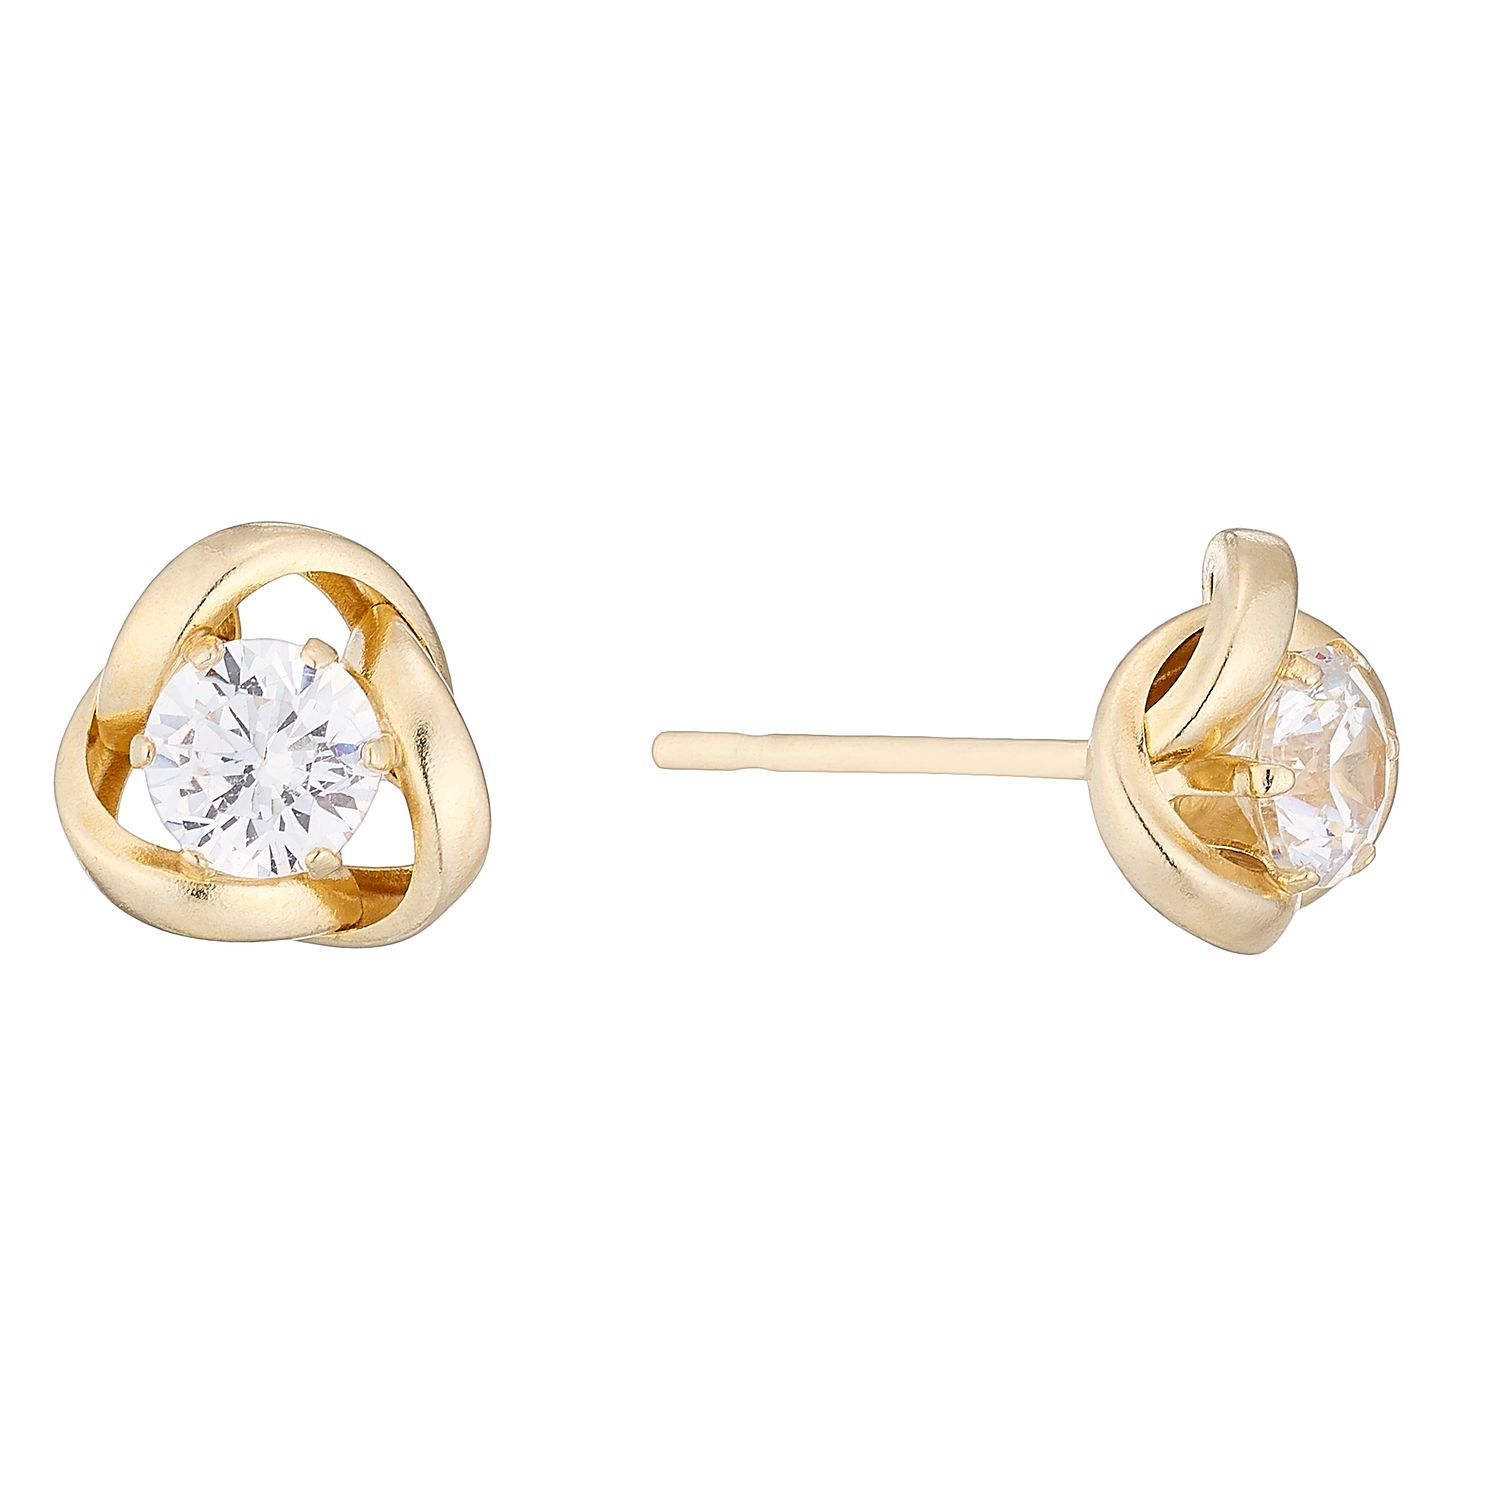 9ct Cubic Zirconia Knot Stud Earrings - Product number 4487508